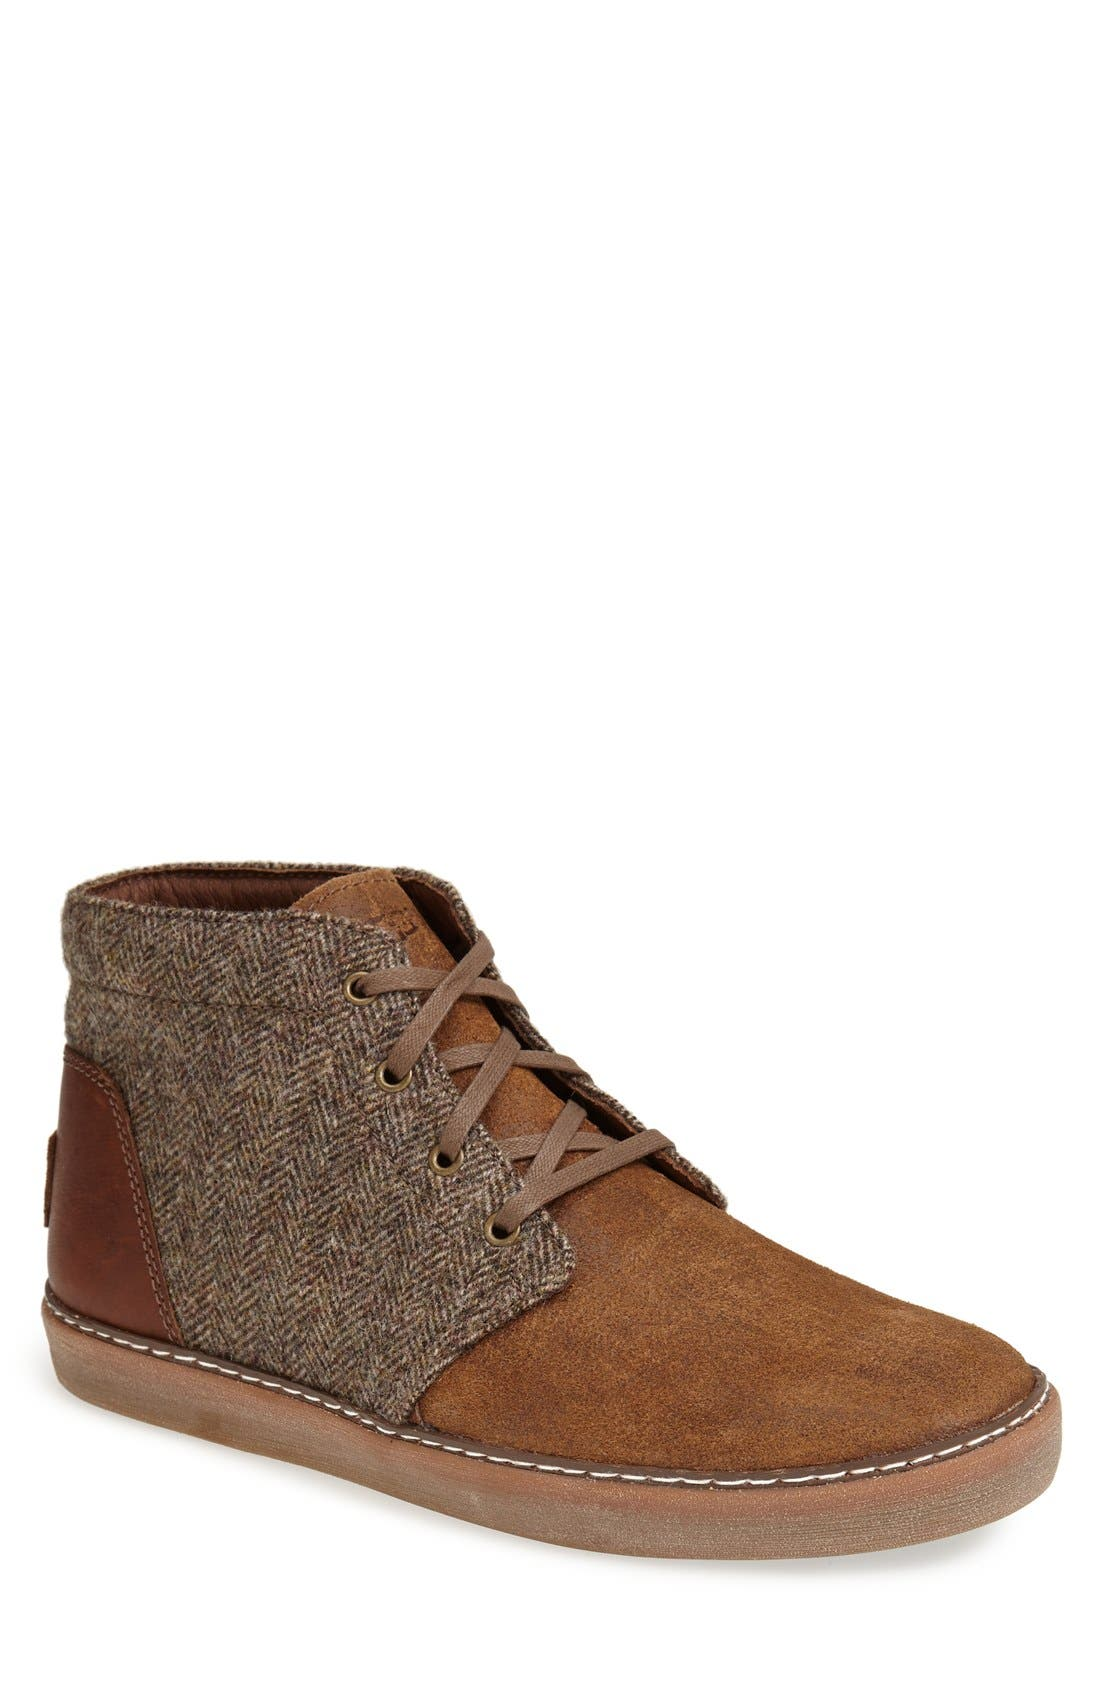 Main Image - UGG® 'Alin' Tweed Chukka Boot (Men)